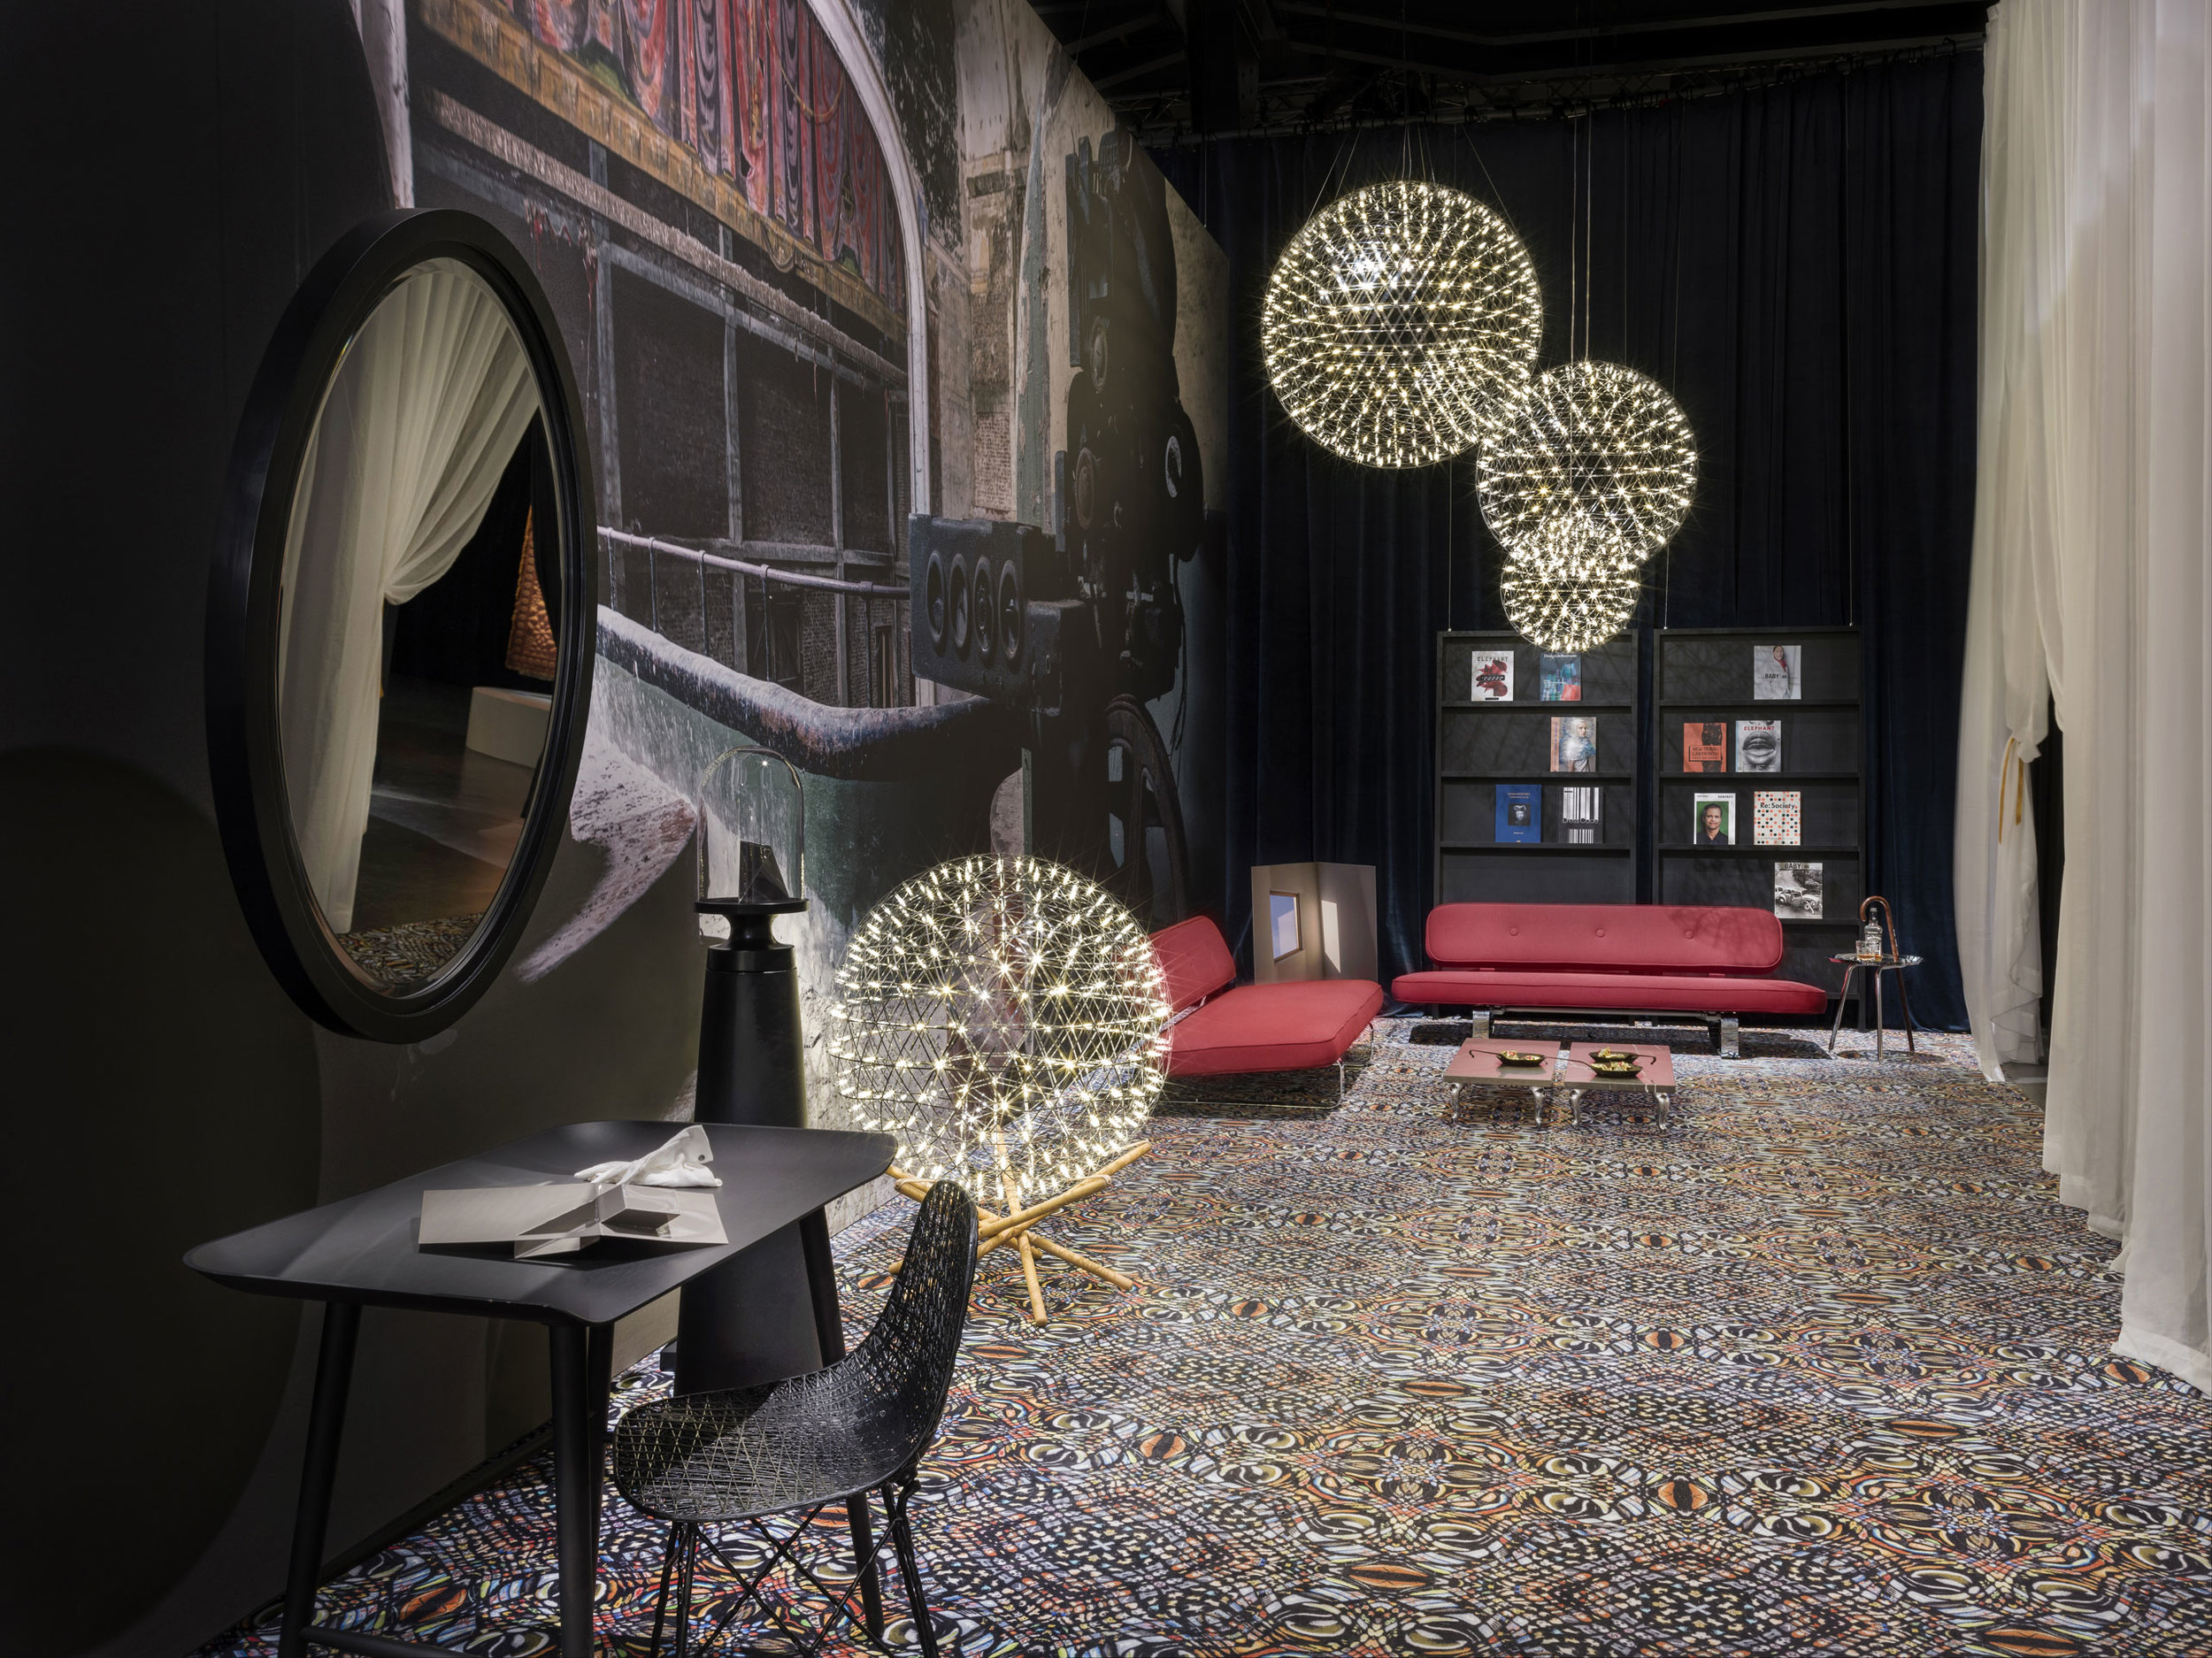 13_by-andrew-meredith-for-moooi._mdw16_yatzer.jpg